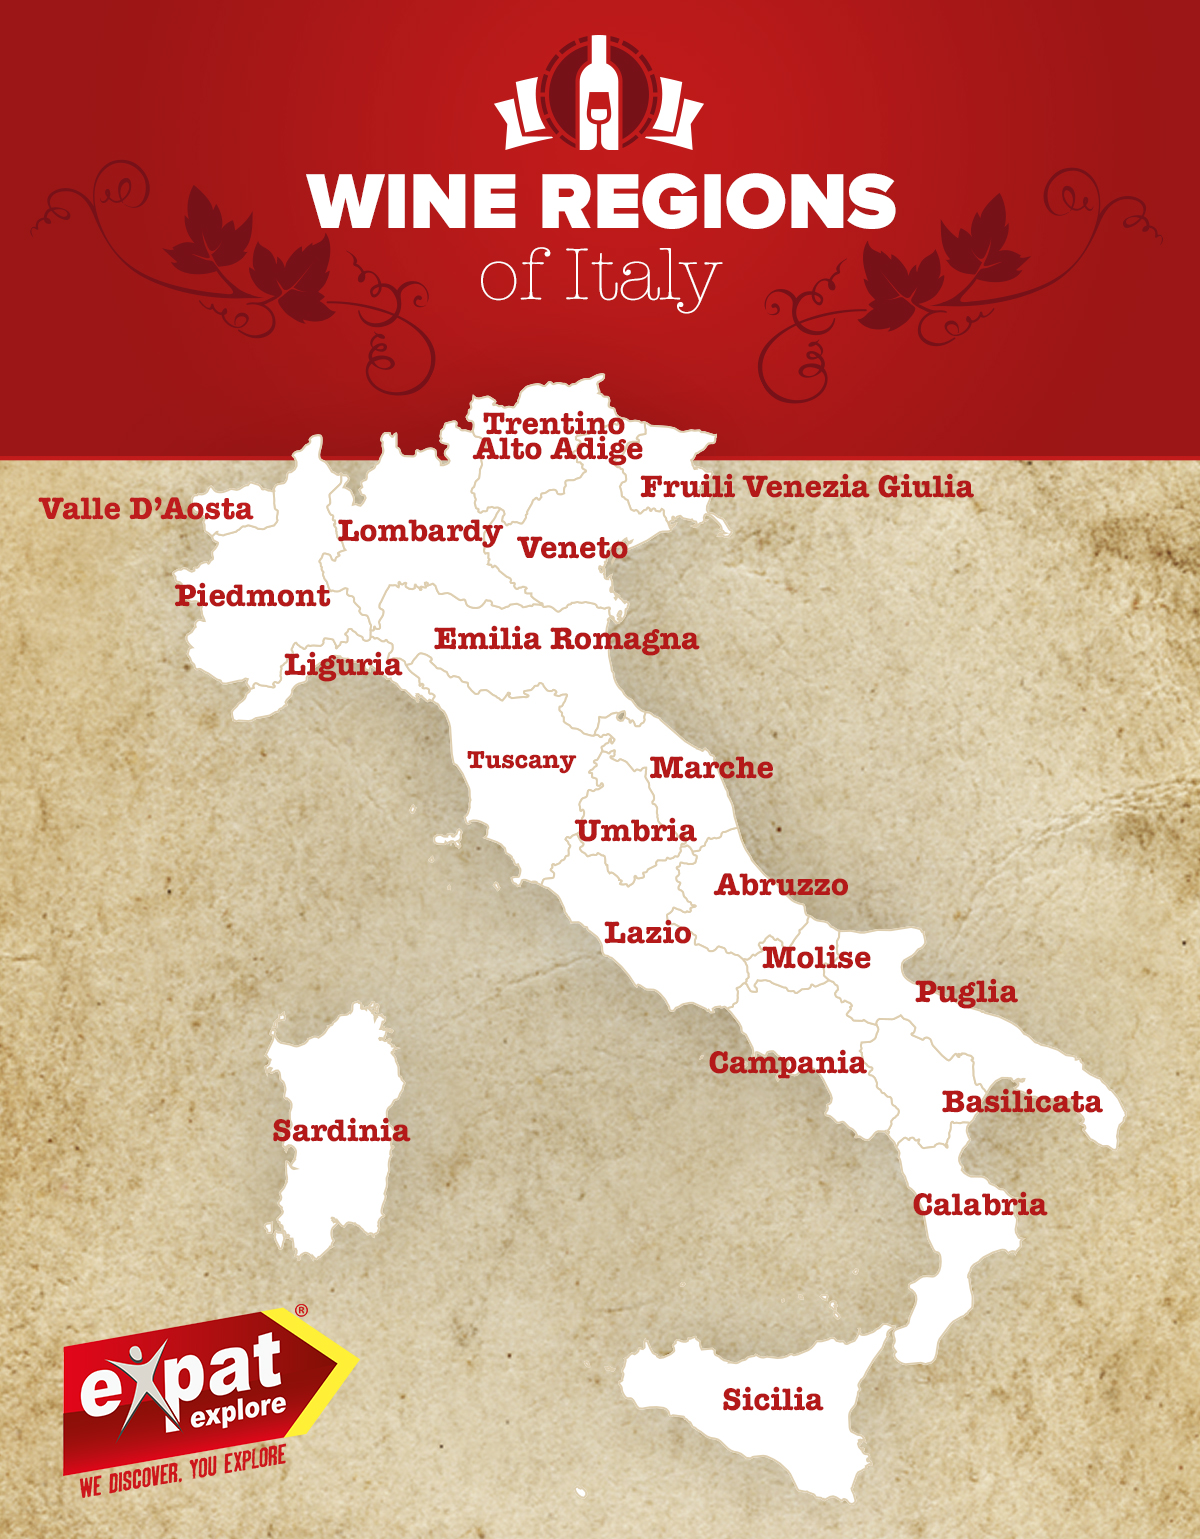 Wine Regions Italy Map.Italy S 20 Wine Regions And What To Drink Where Expat Explore